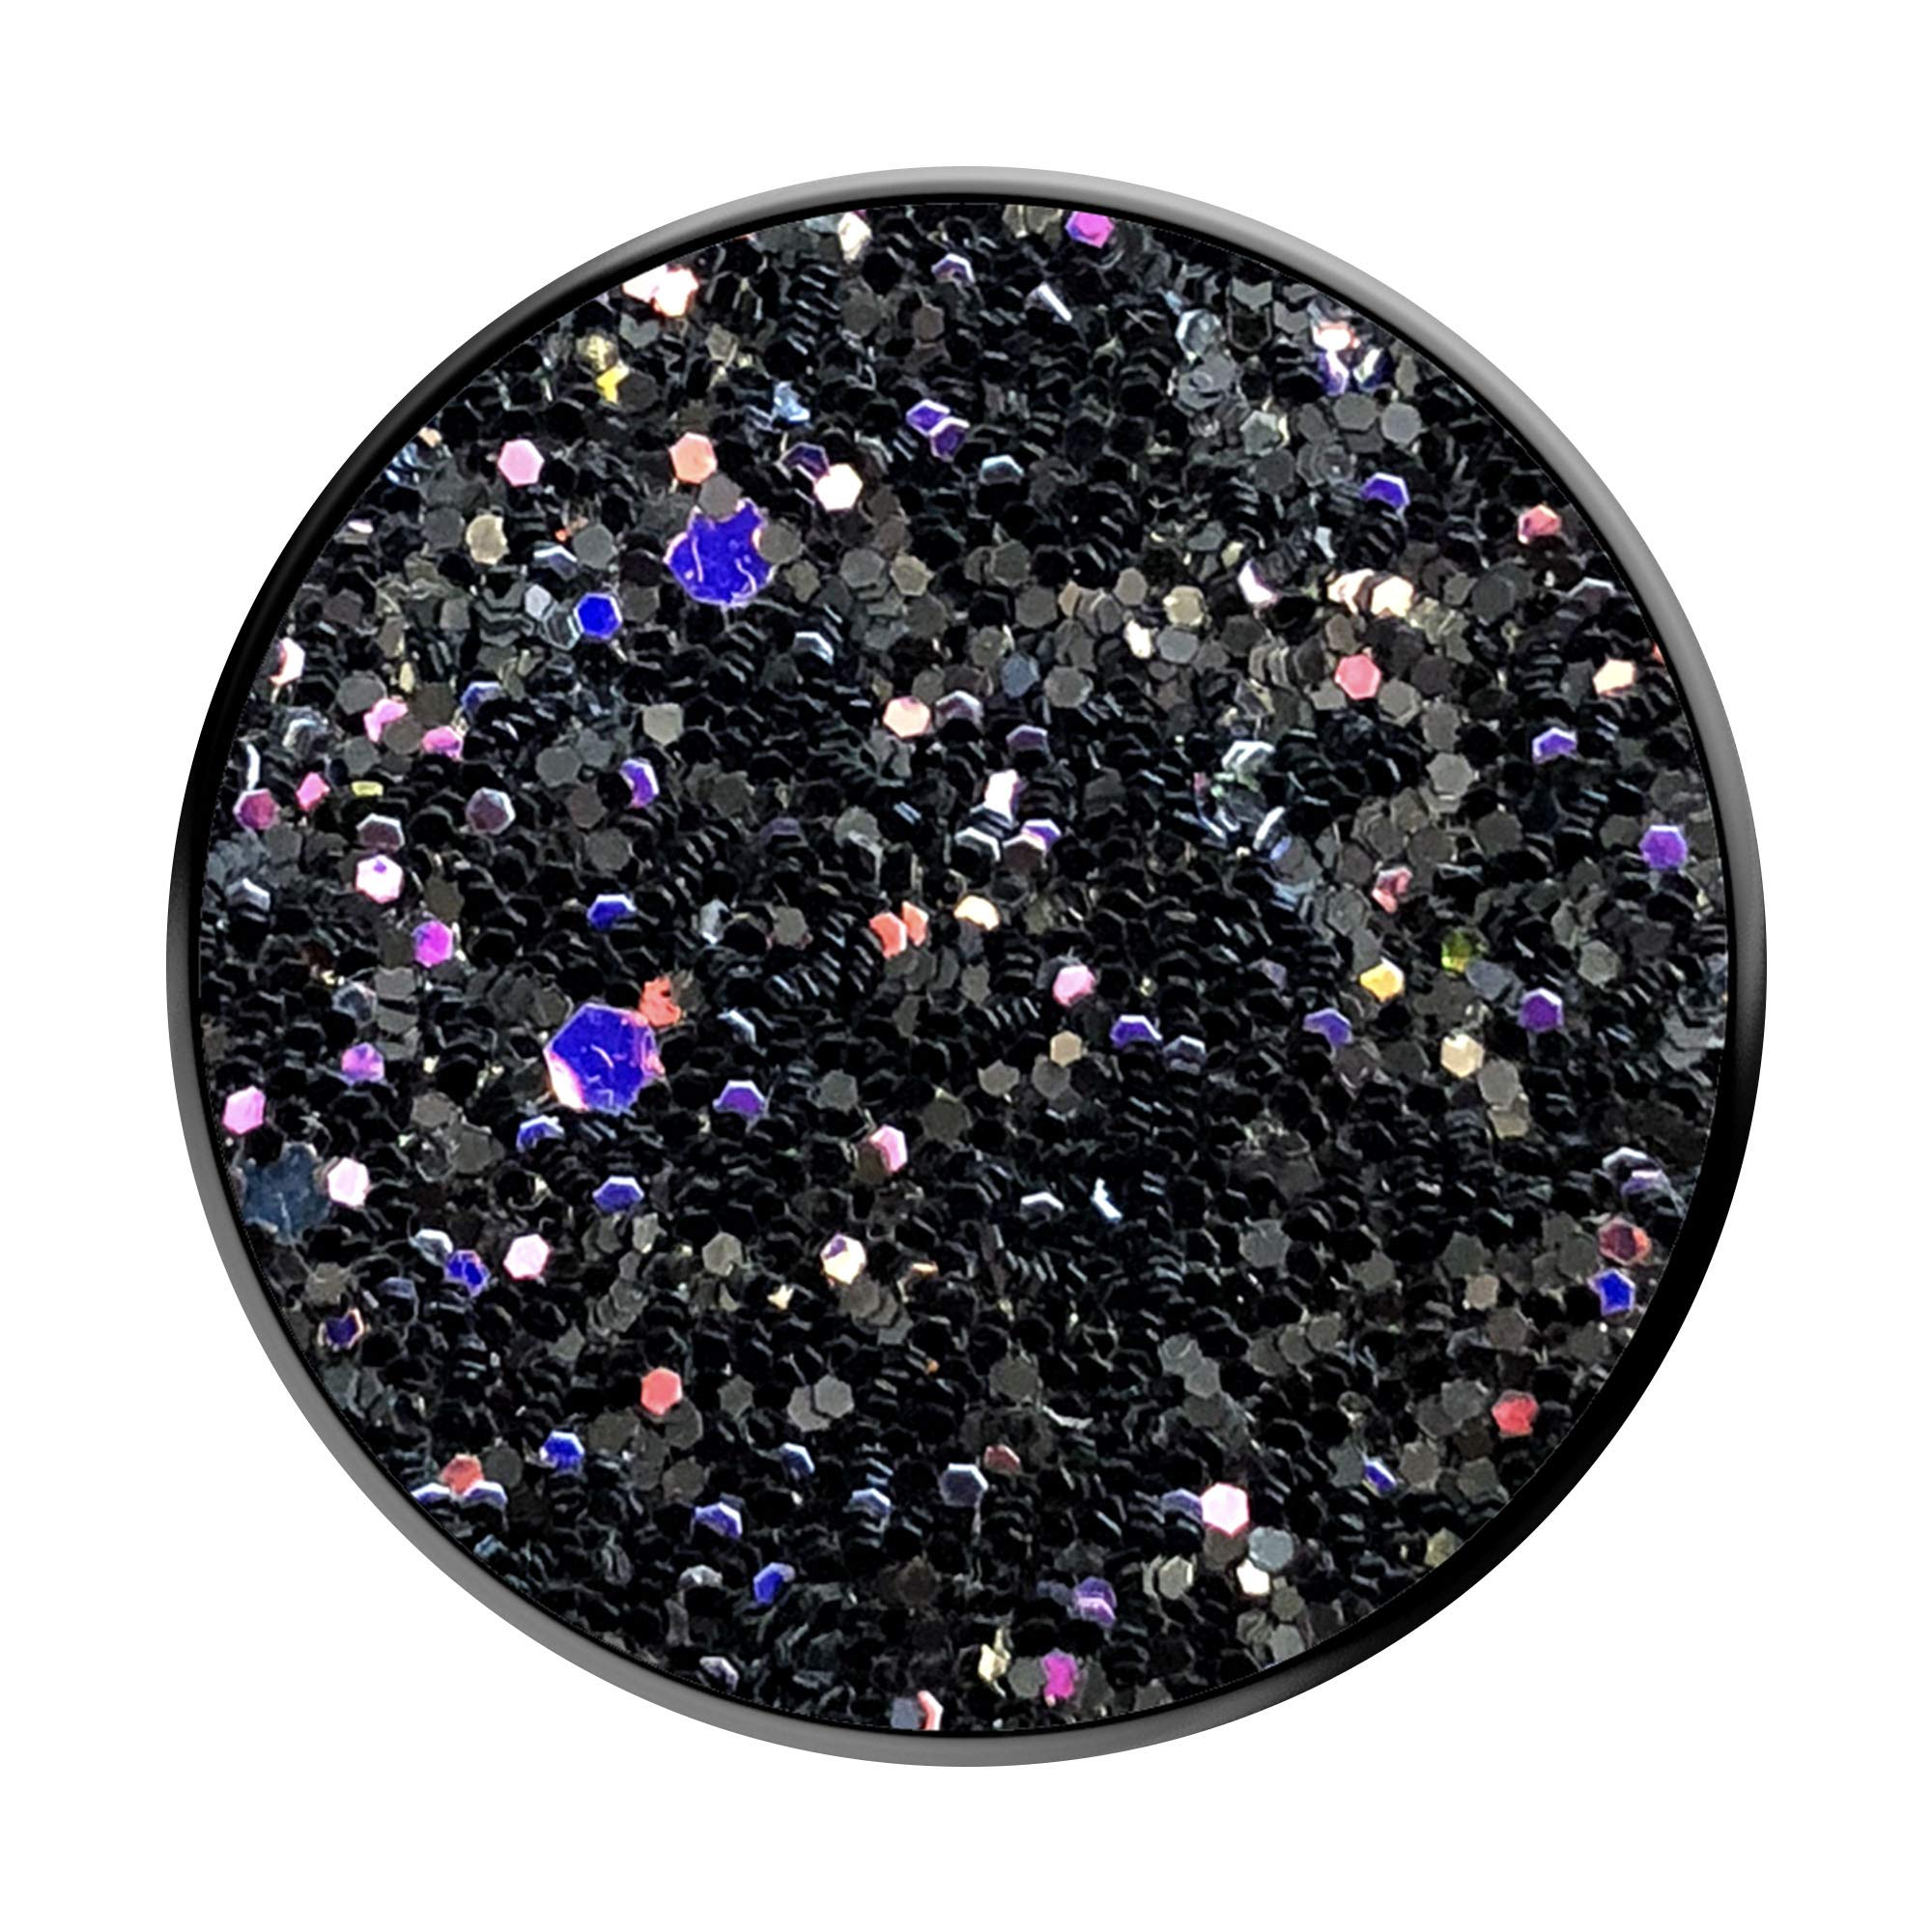 PopSockets: Collapsible Grip & Stand for Phones and Tablets - Sparkle Black by PopSockets